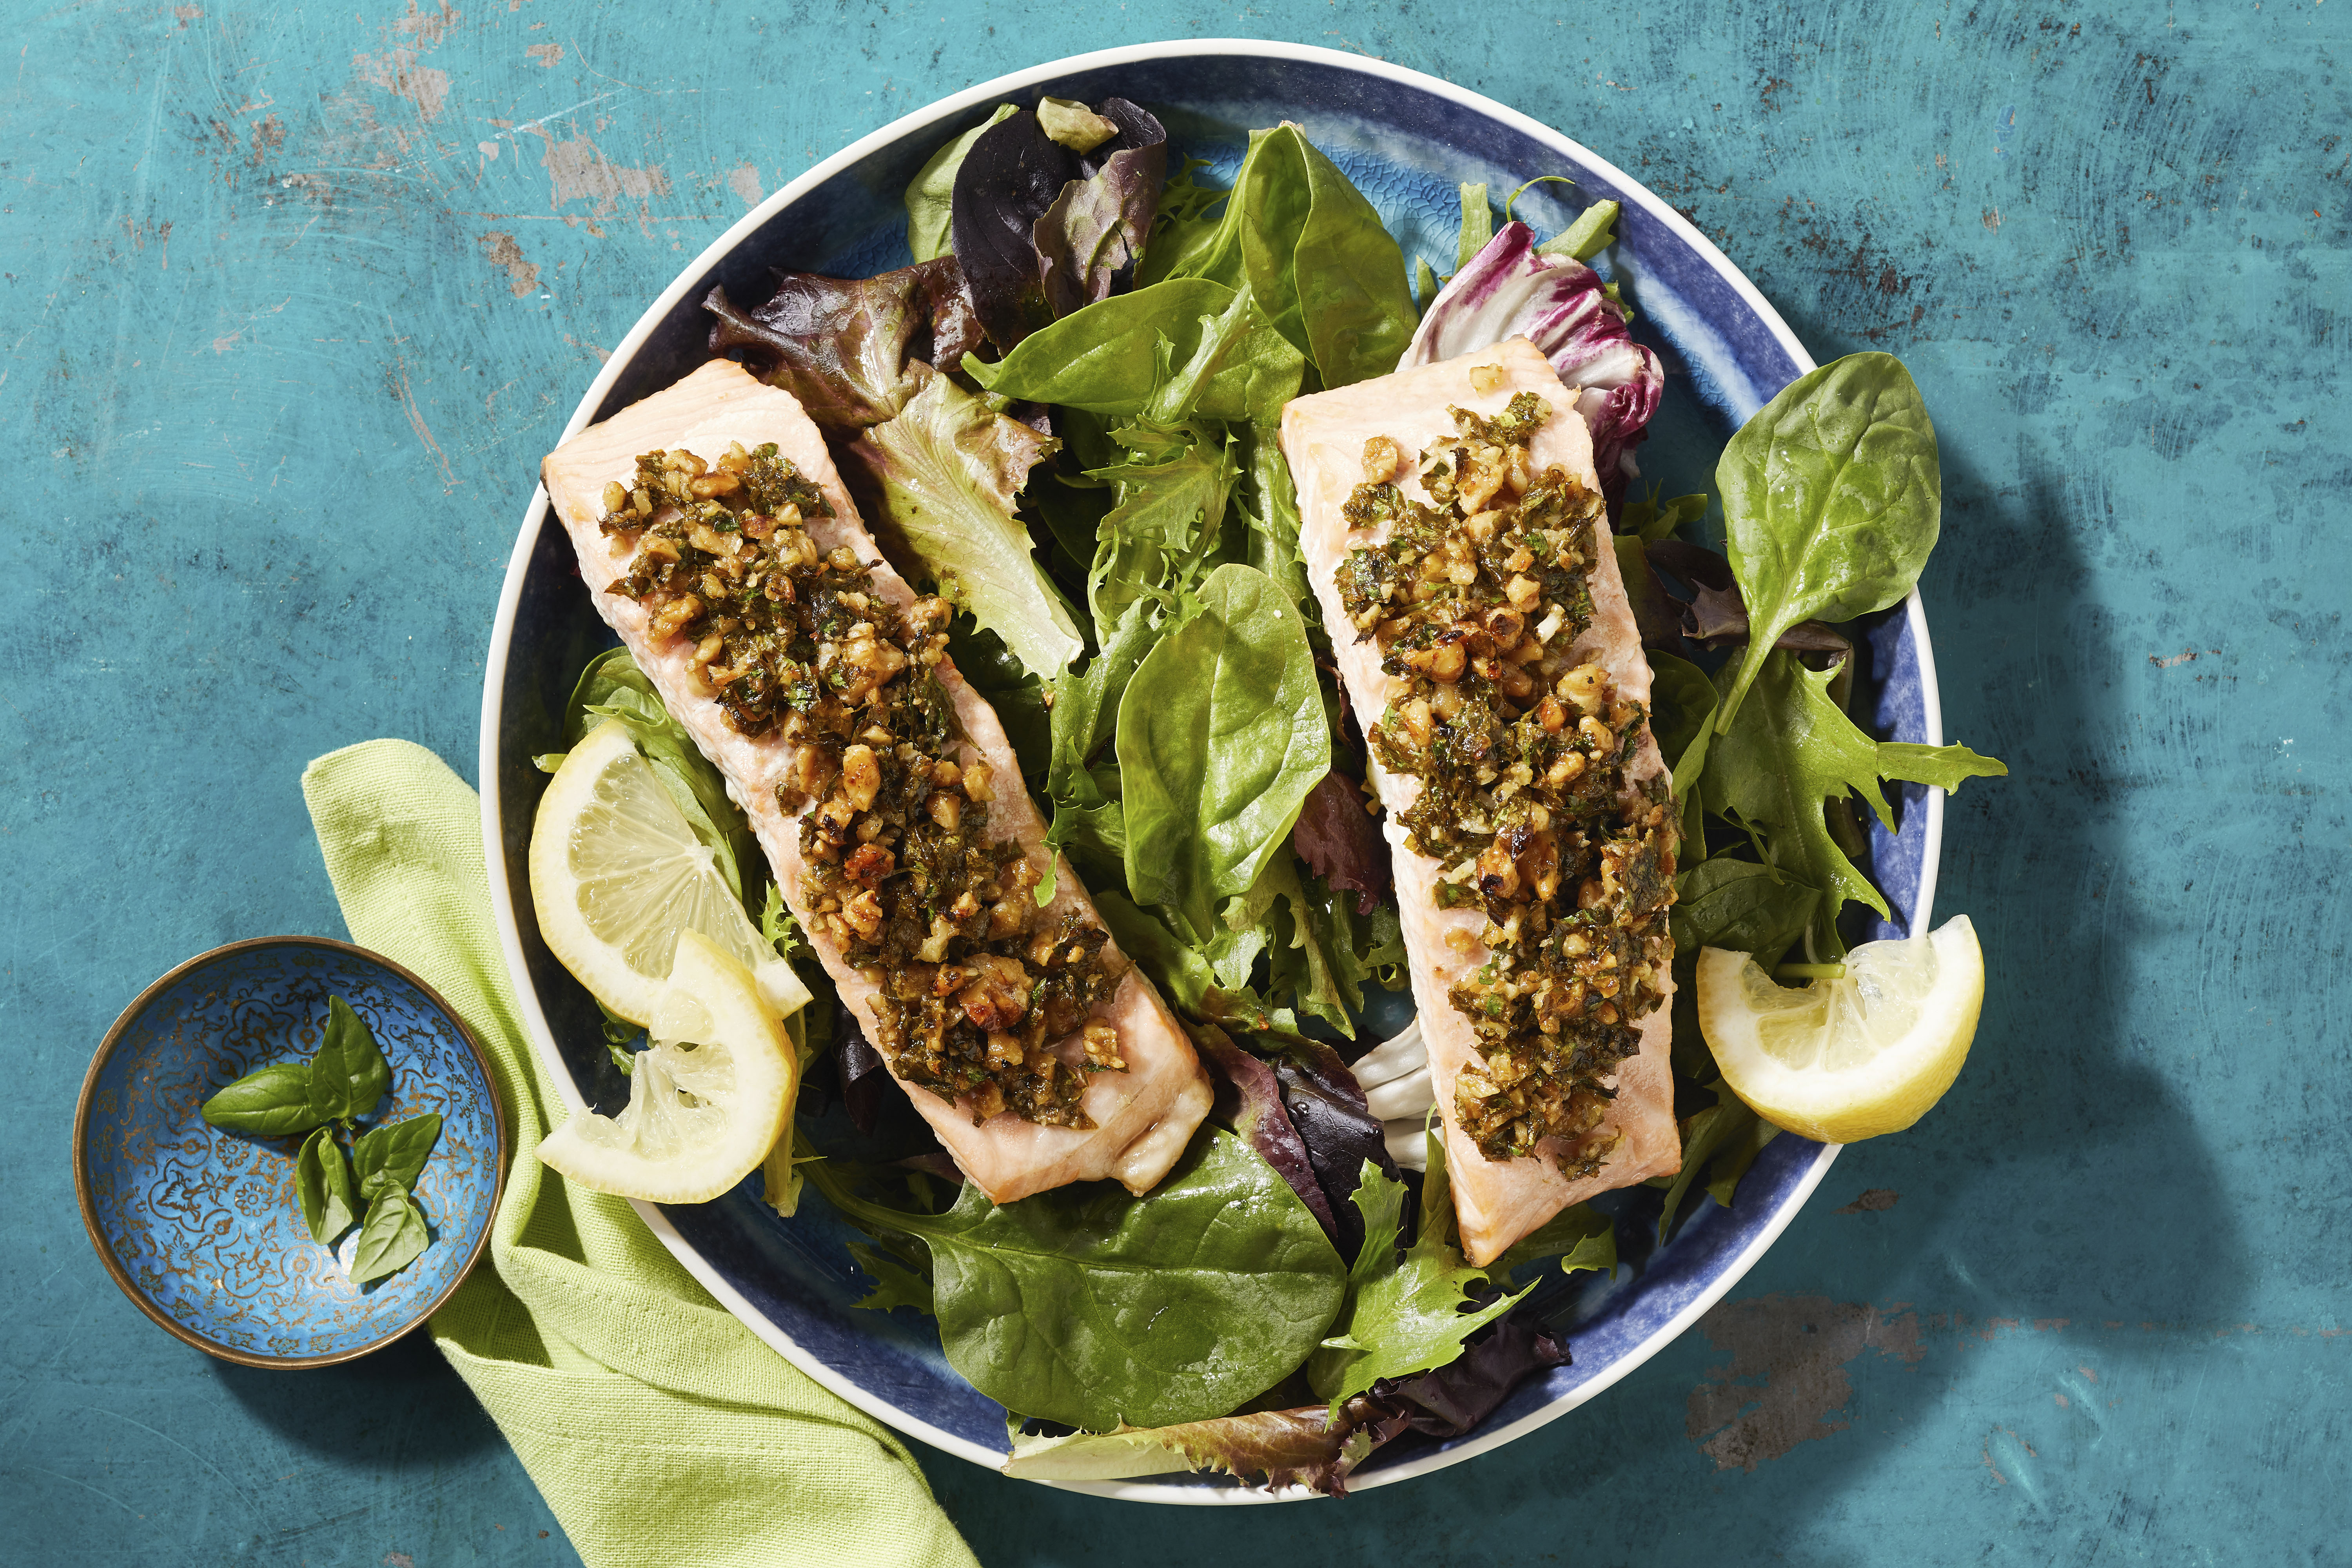 Parsley and Walnut-Crusted Salmon